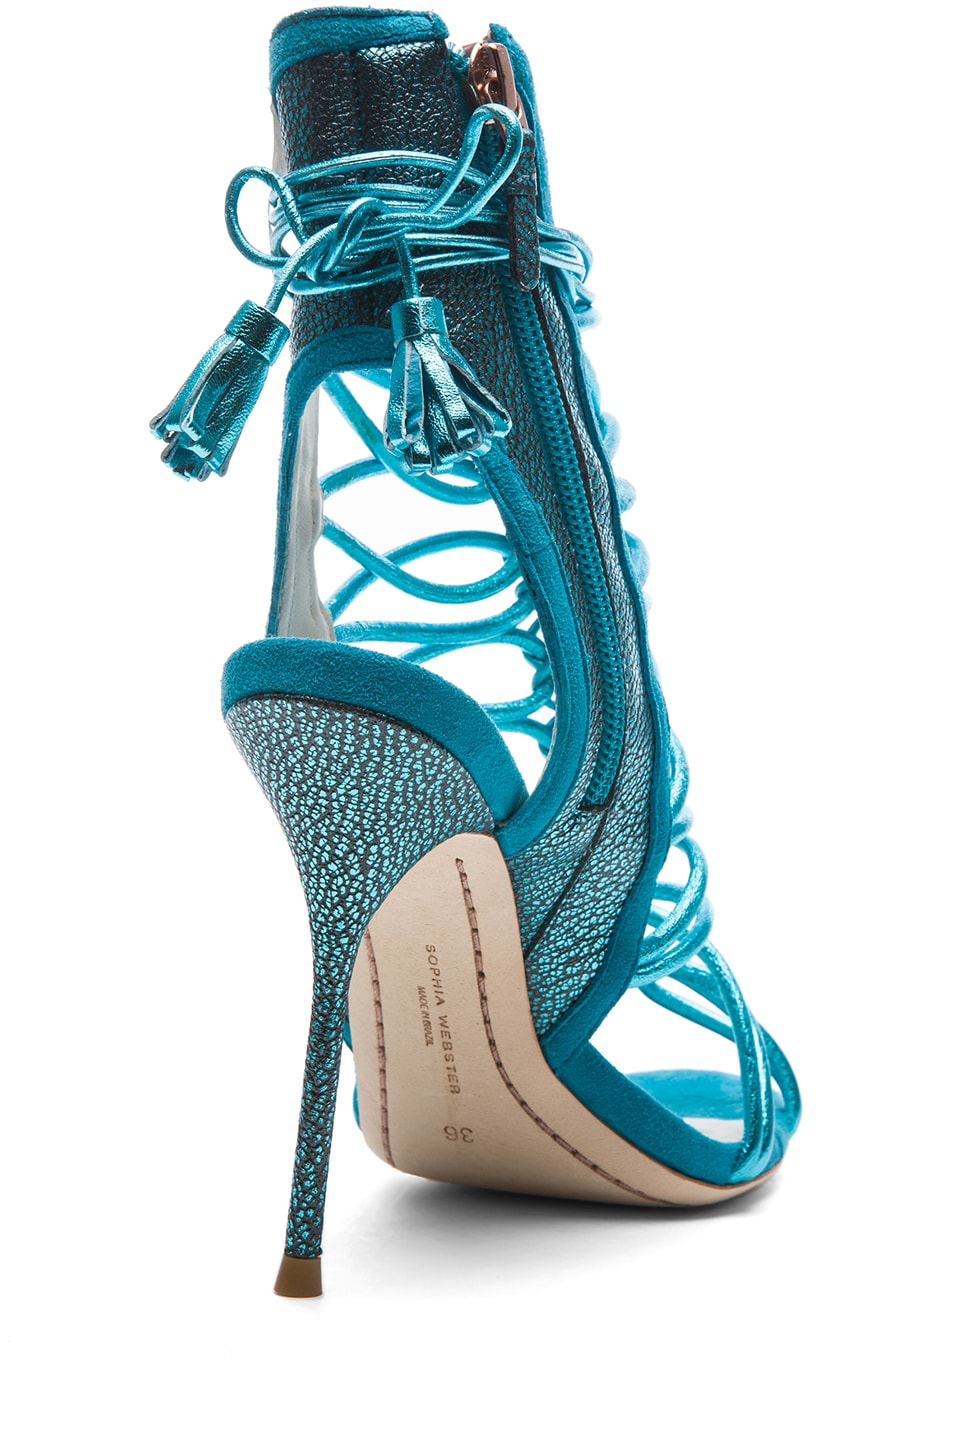 Image 3 of Sophia Webster Lacey Grain Metallic Leather Tie Up Heels in Turquoise